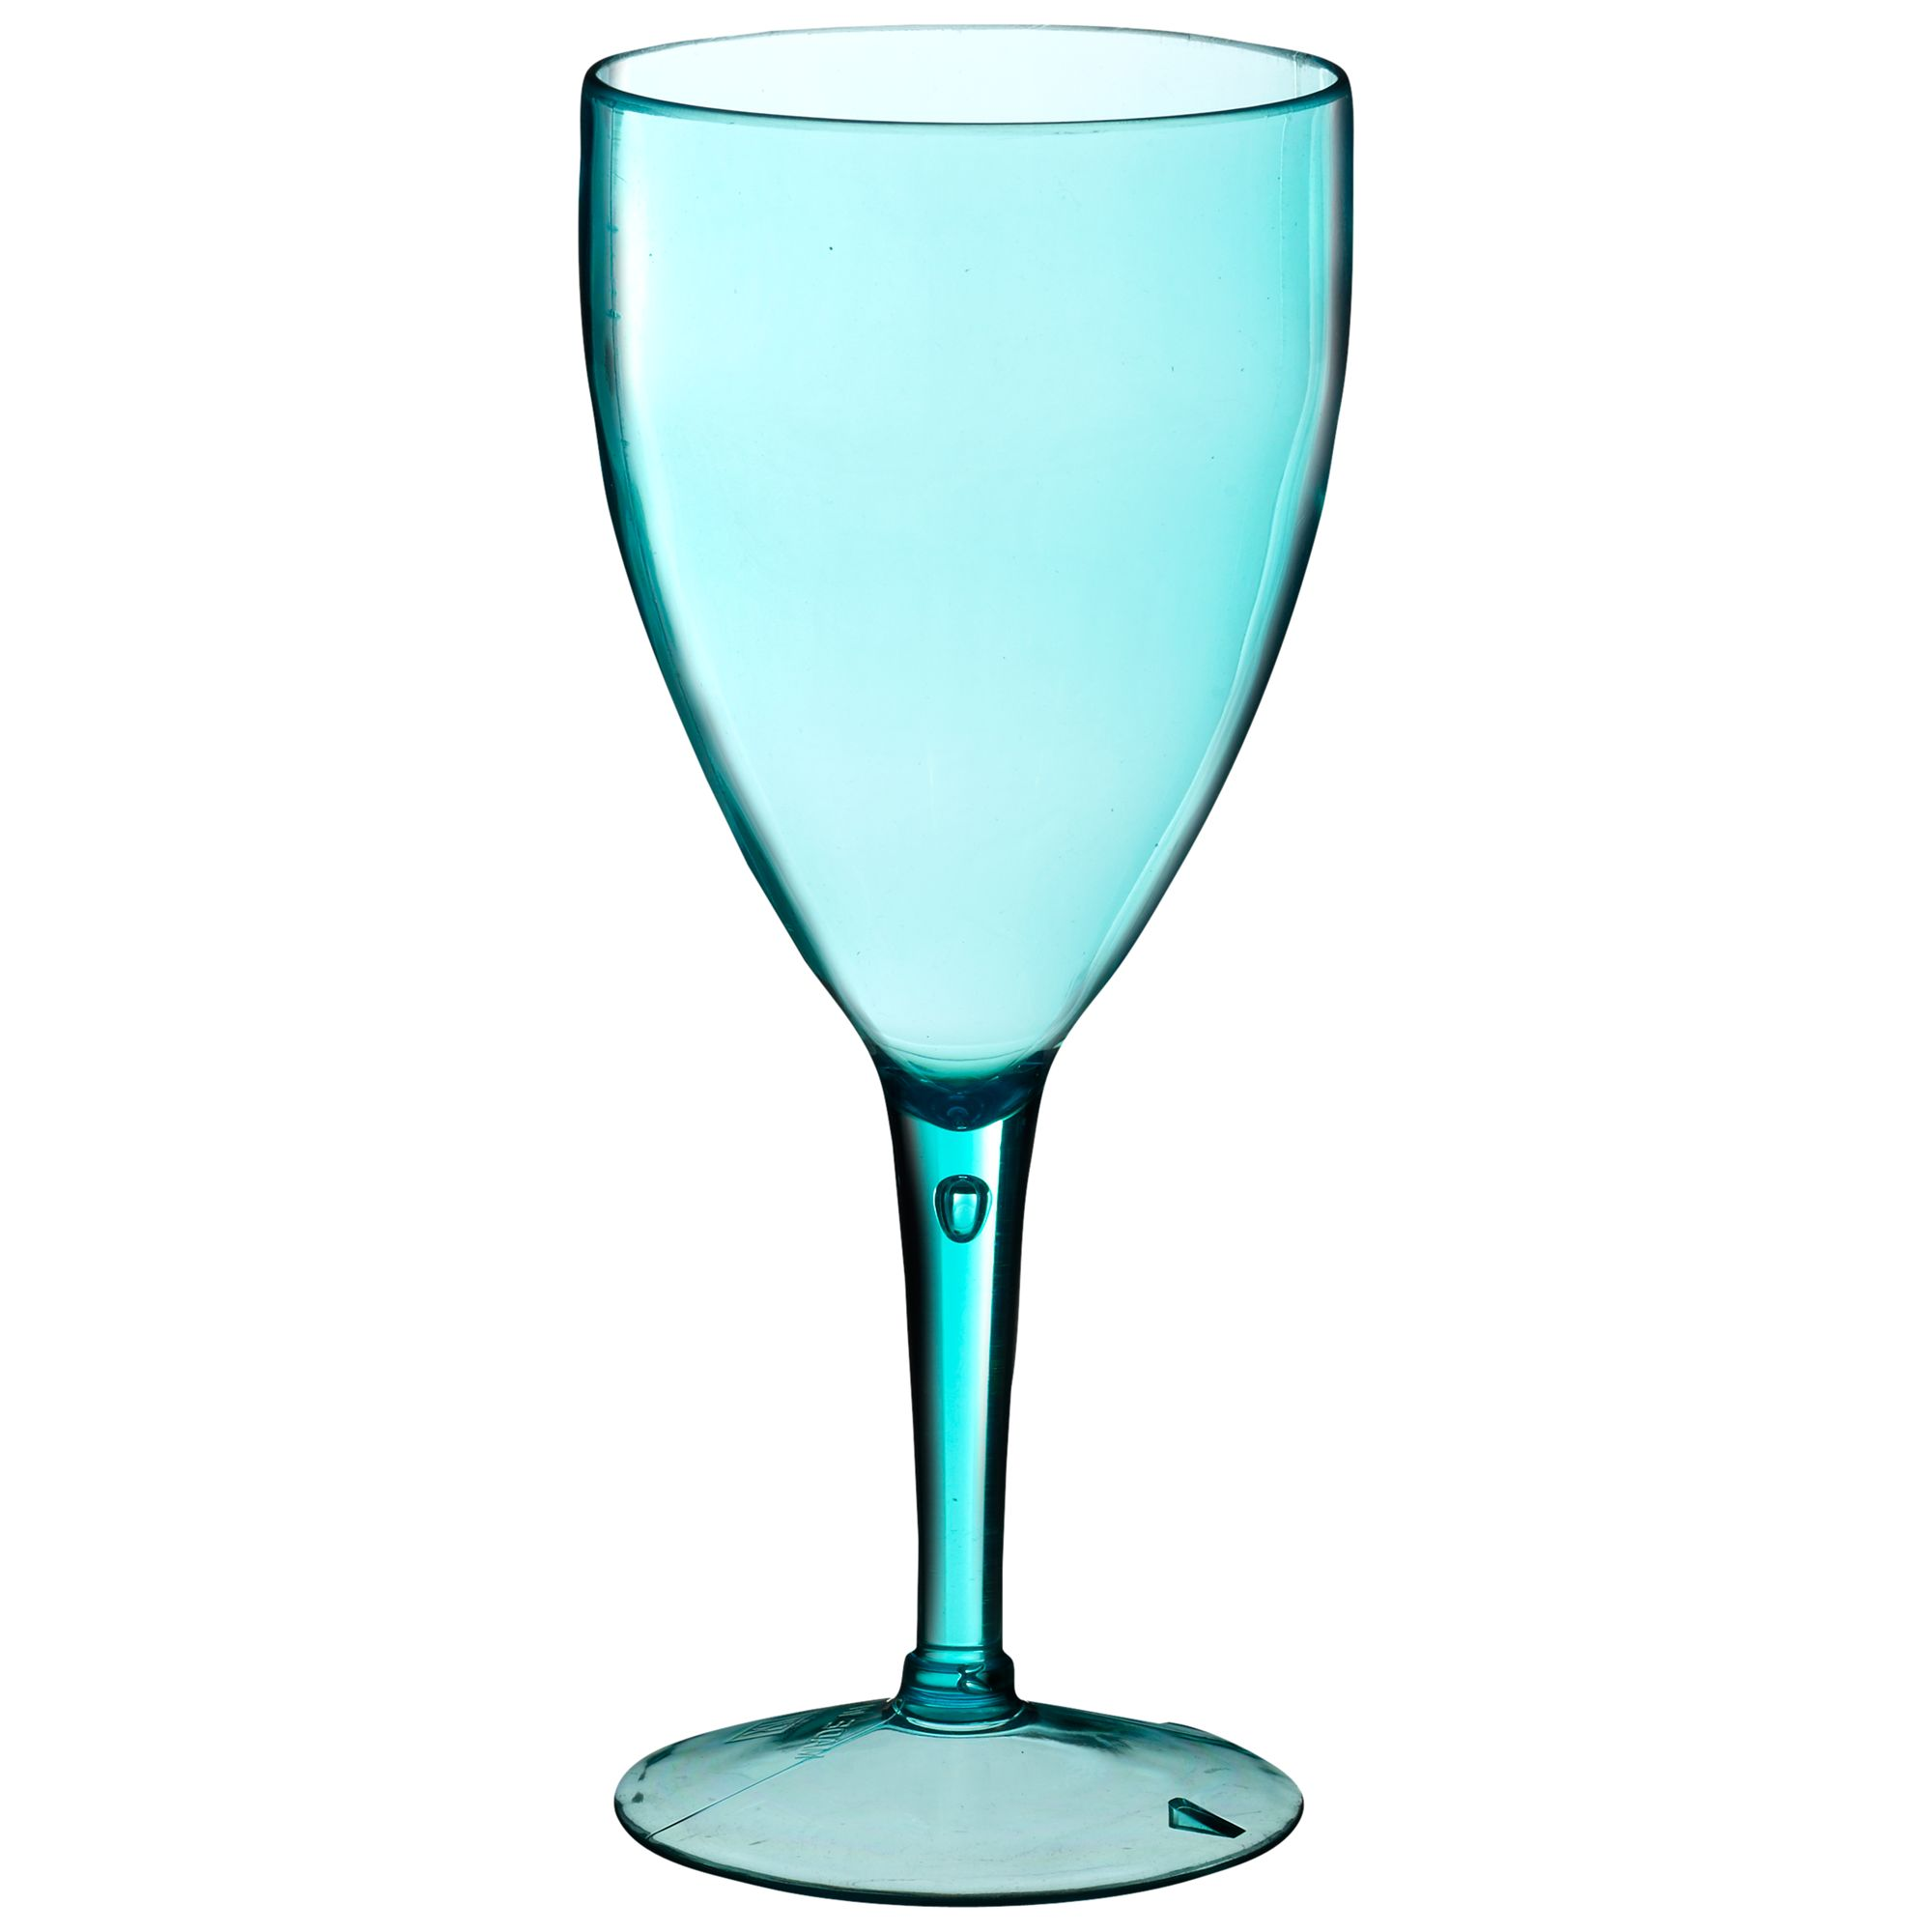 John Lewis Playnation Acrylic Wine Glasses